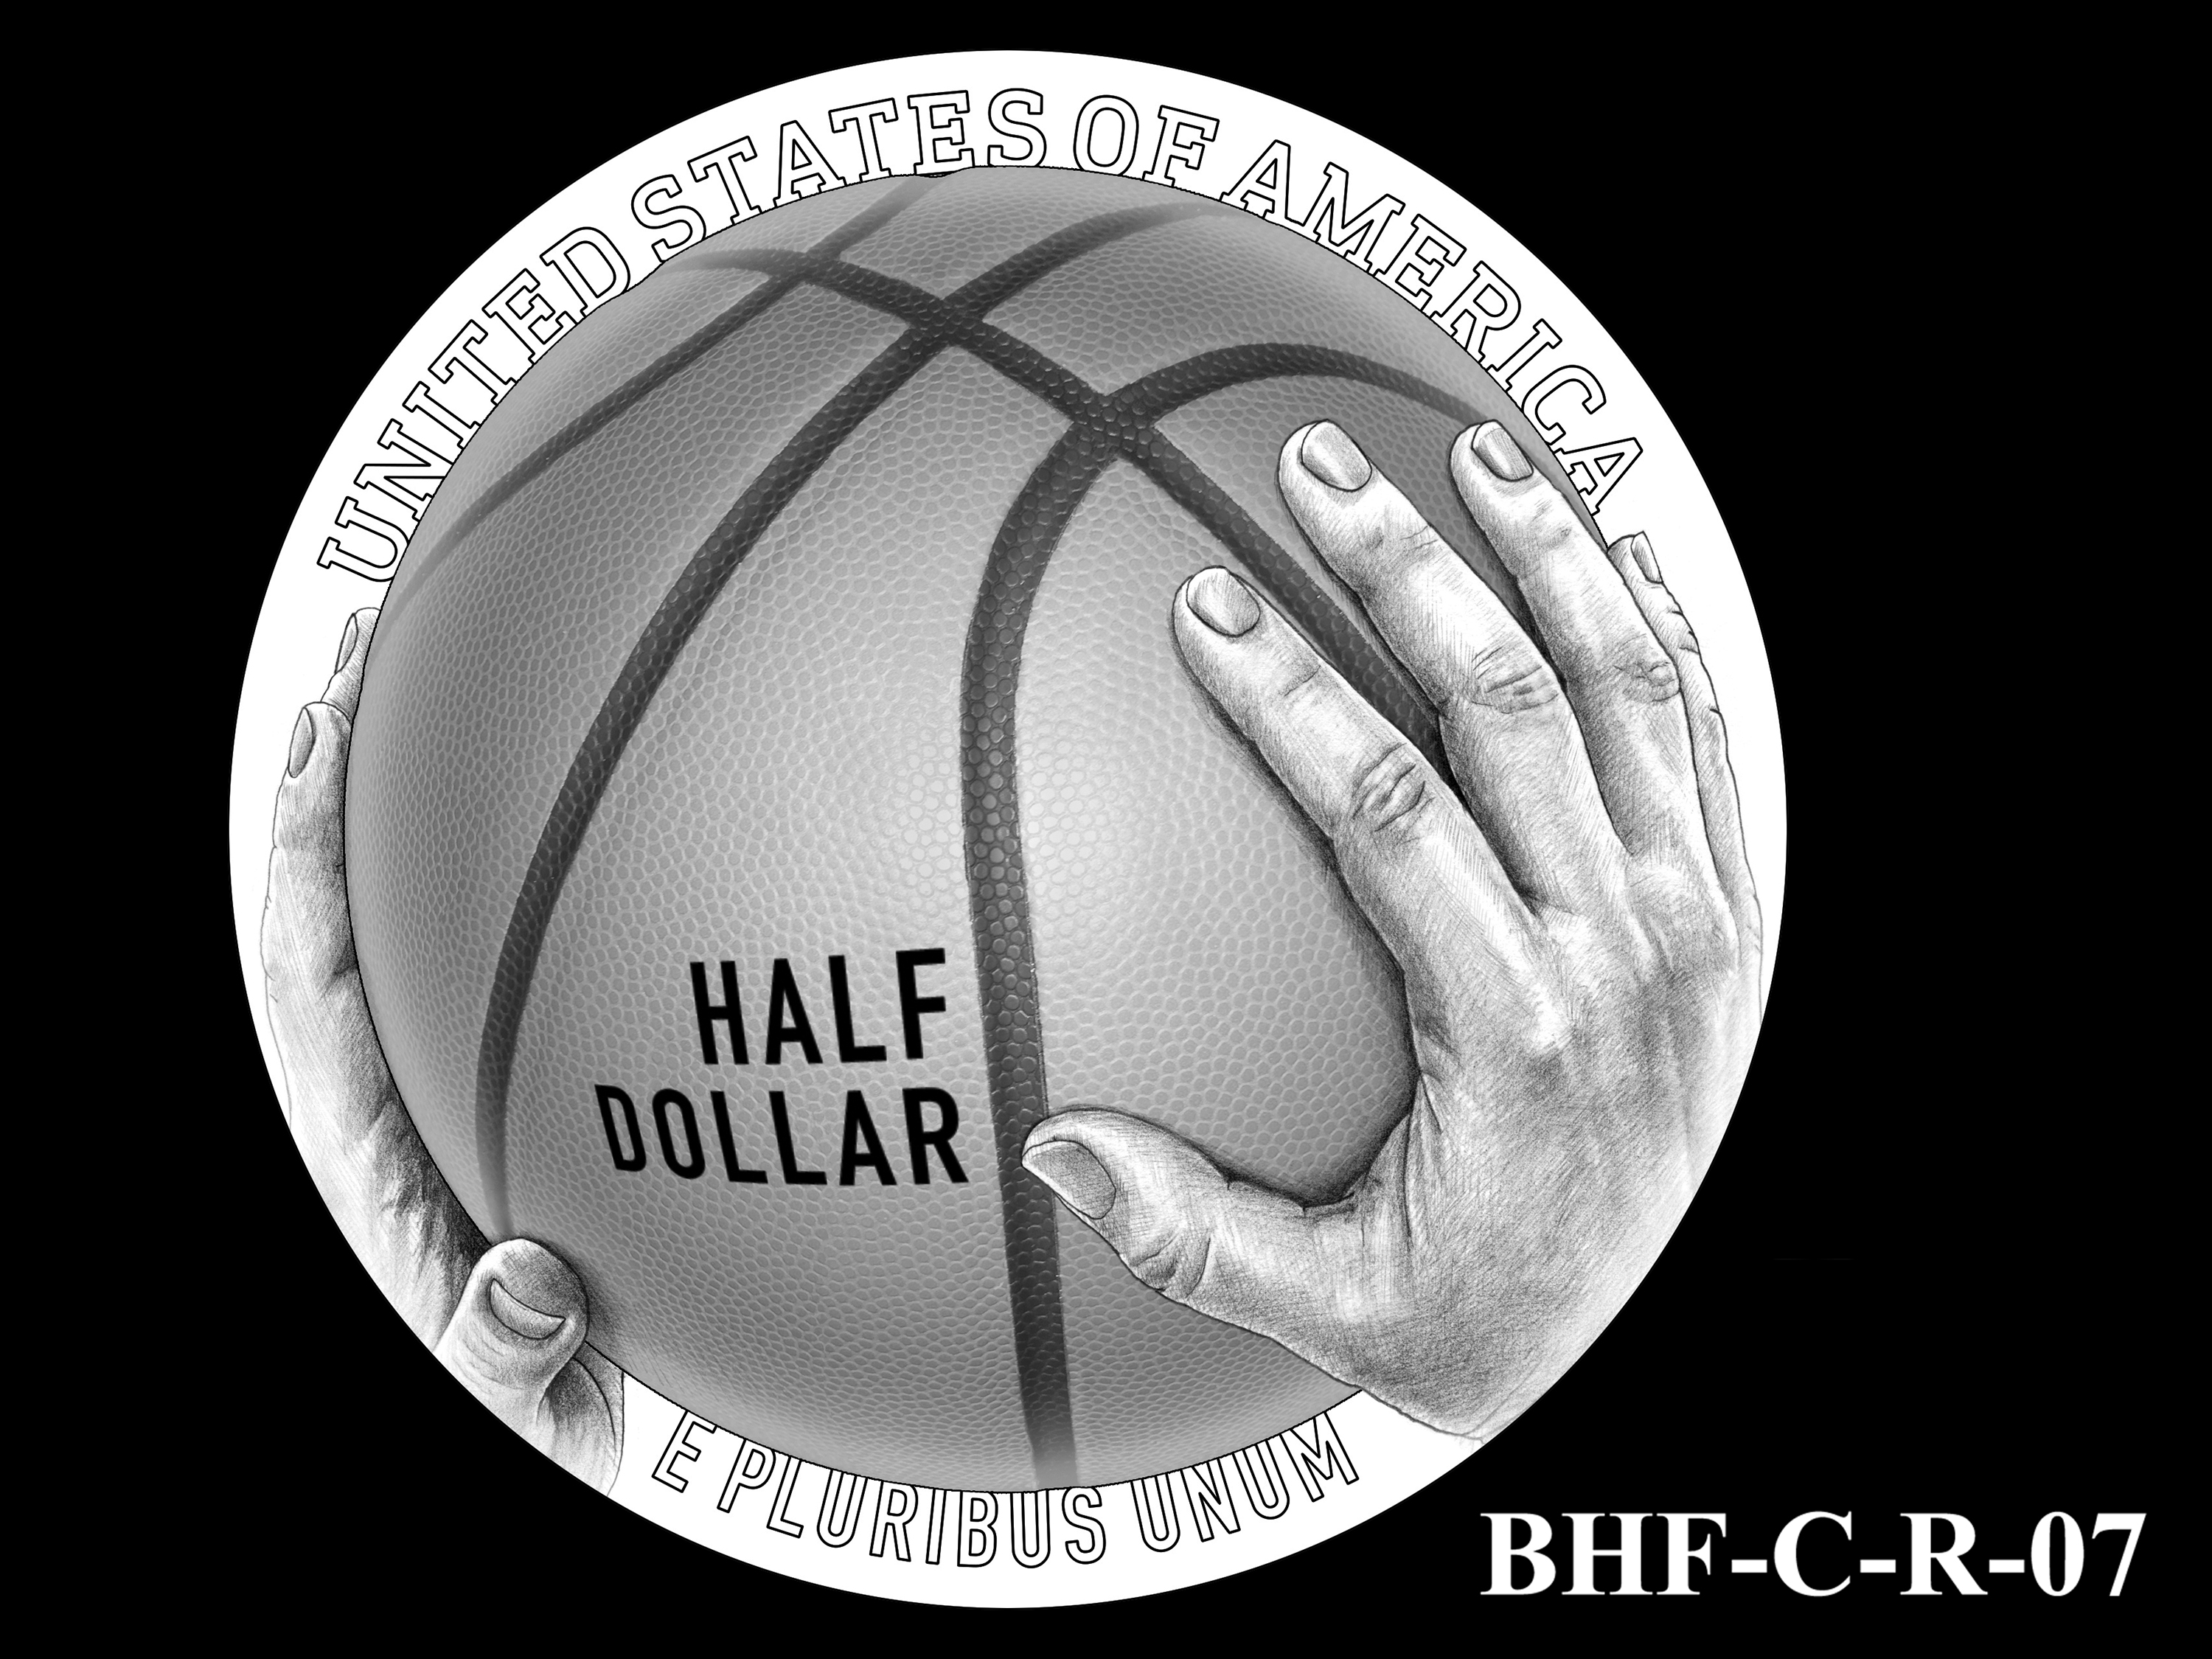 BHF-C-R-07 -- 2020 Basketball Hall of Fame Commemorative Coin Program - Clad Reverse